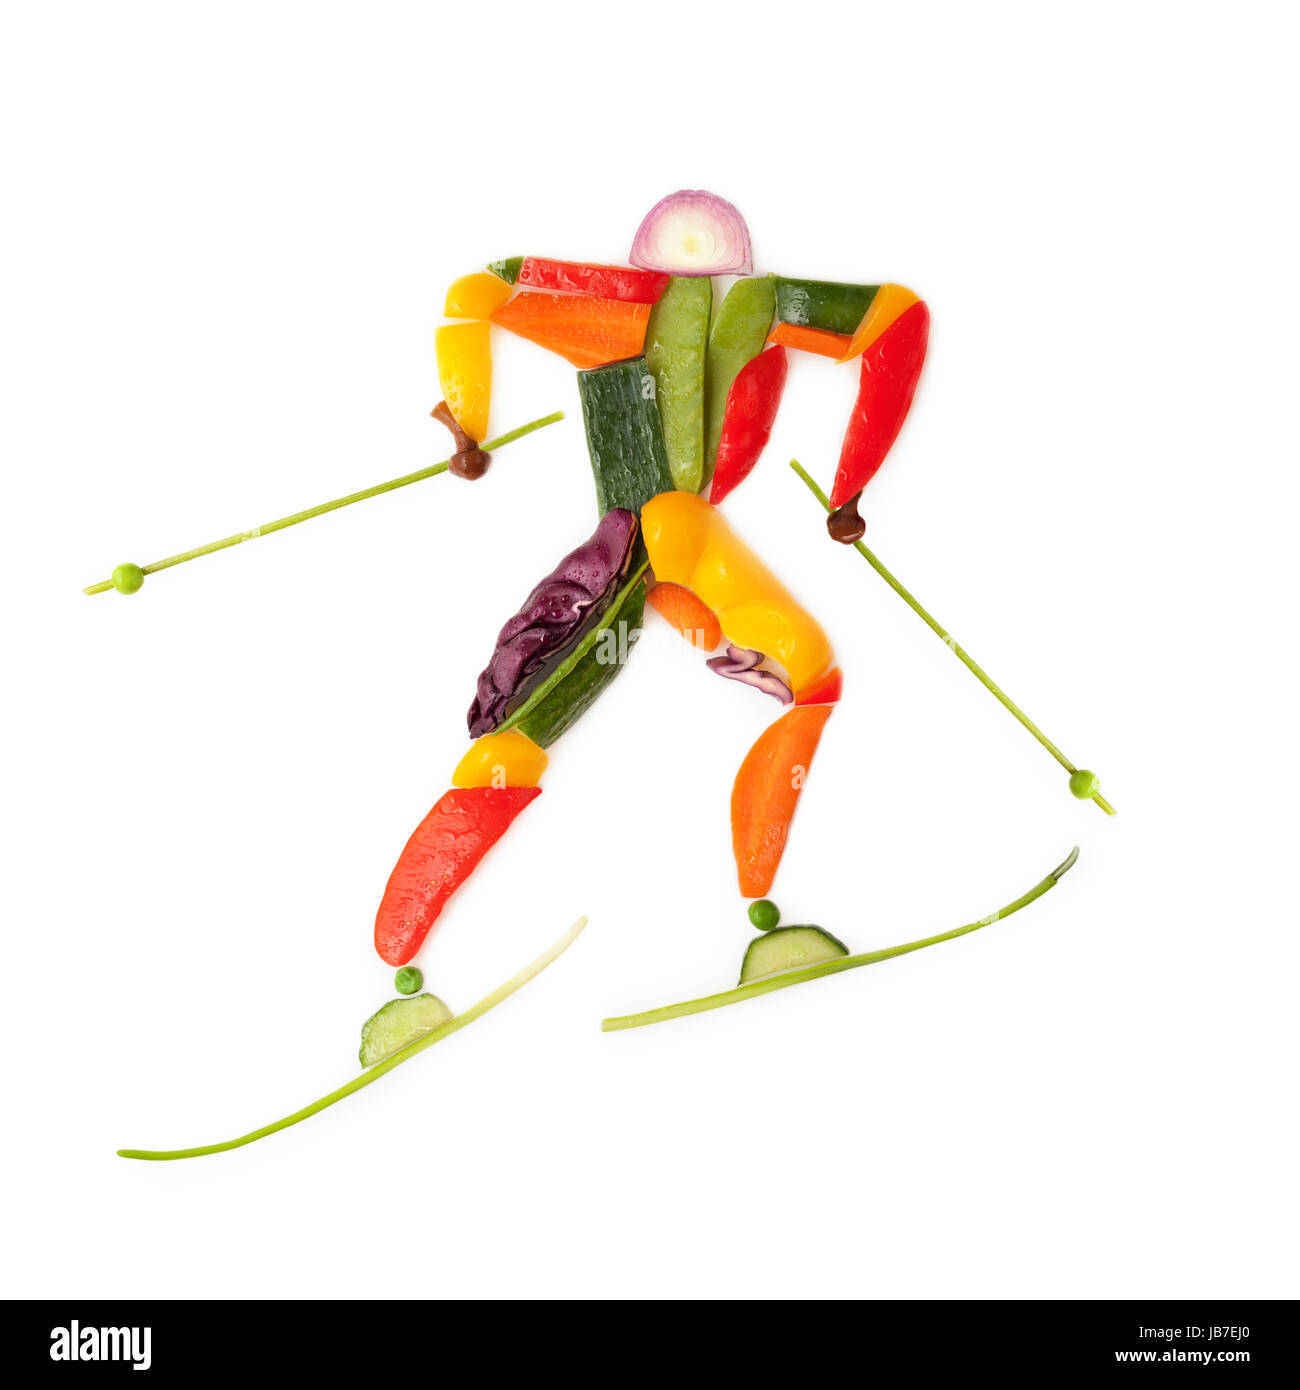 Fruits and vegetables in the shape of a winter skier. - Stock Image